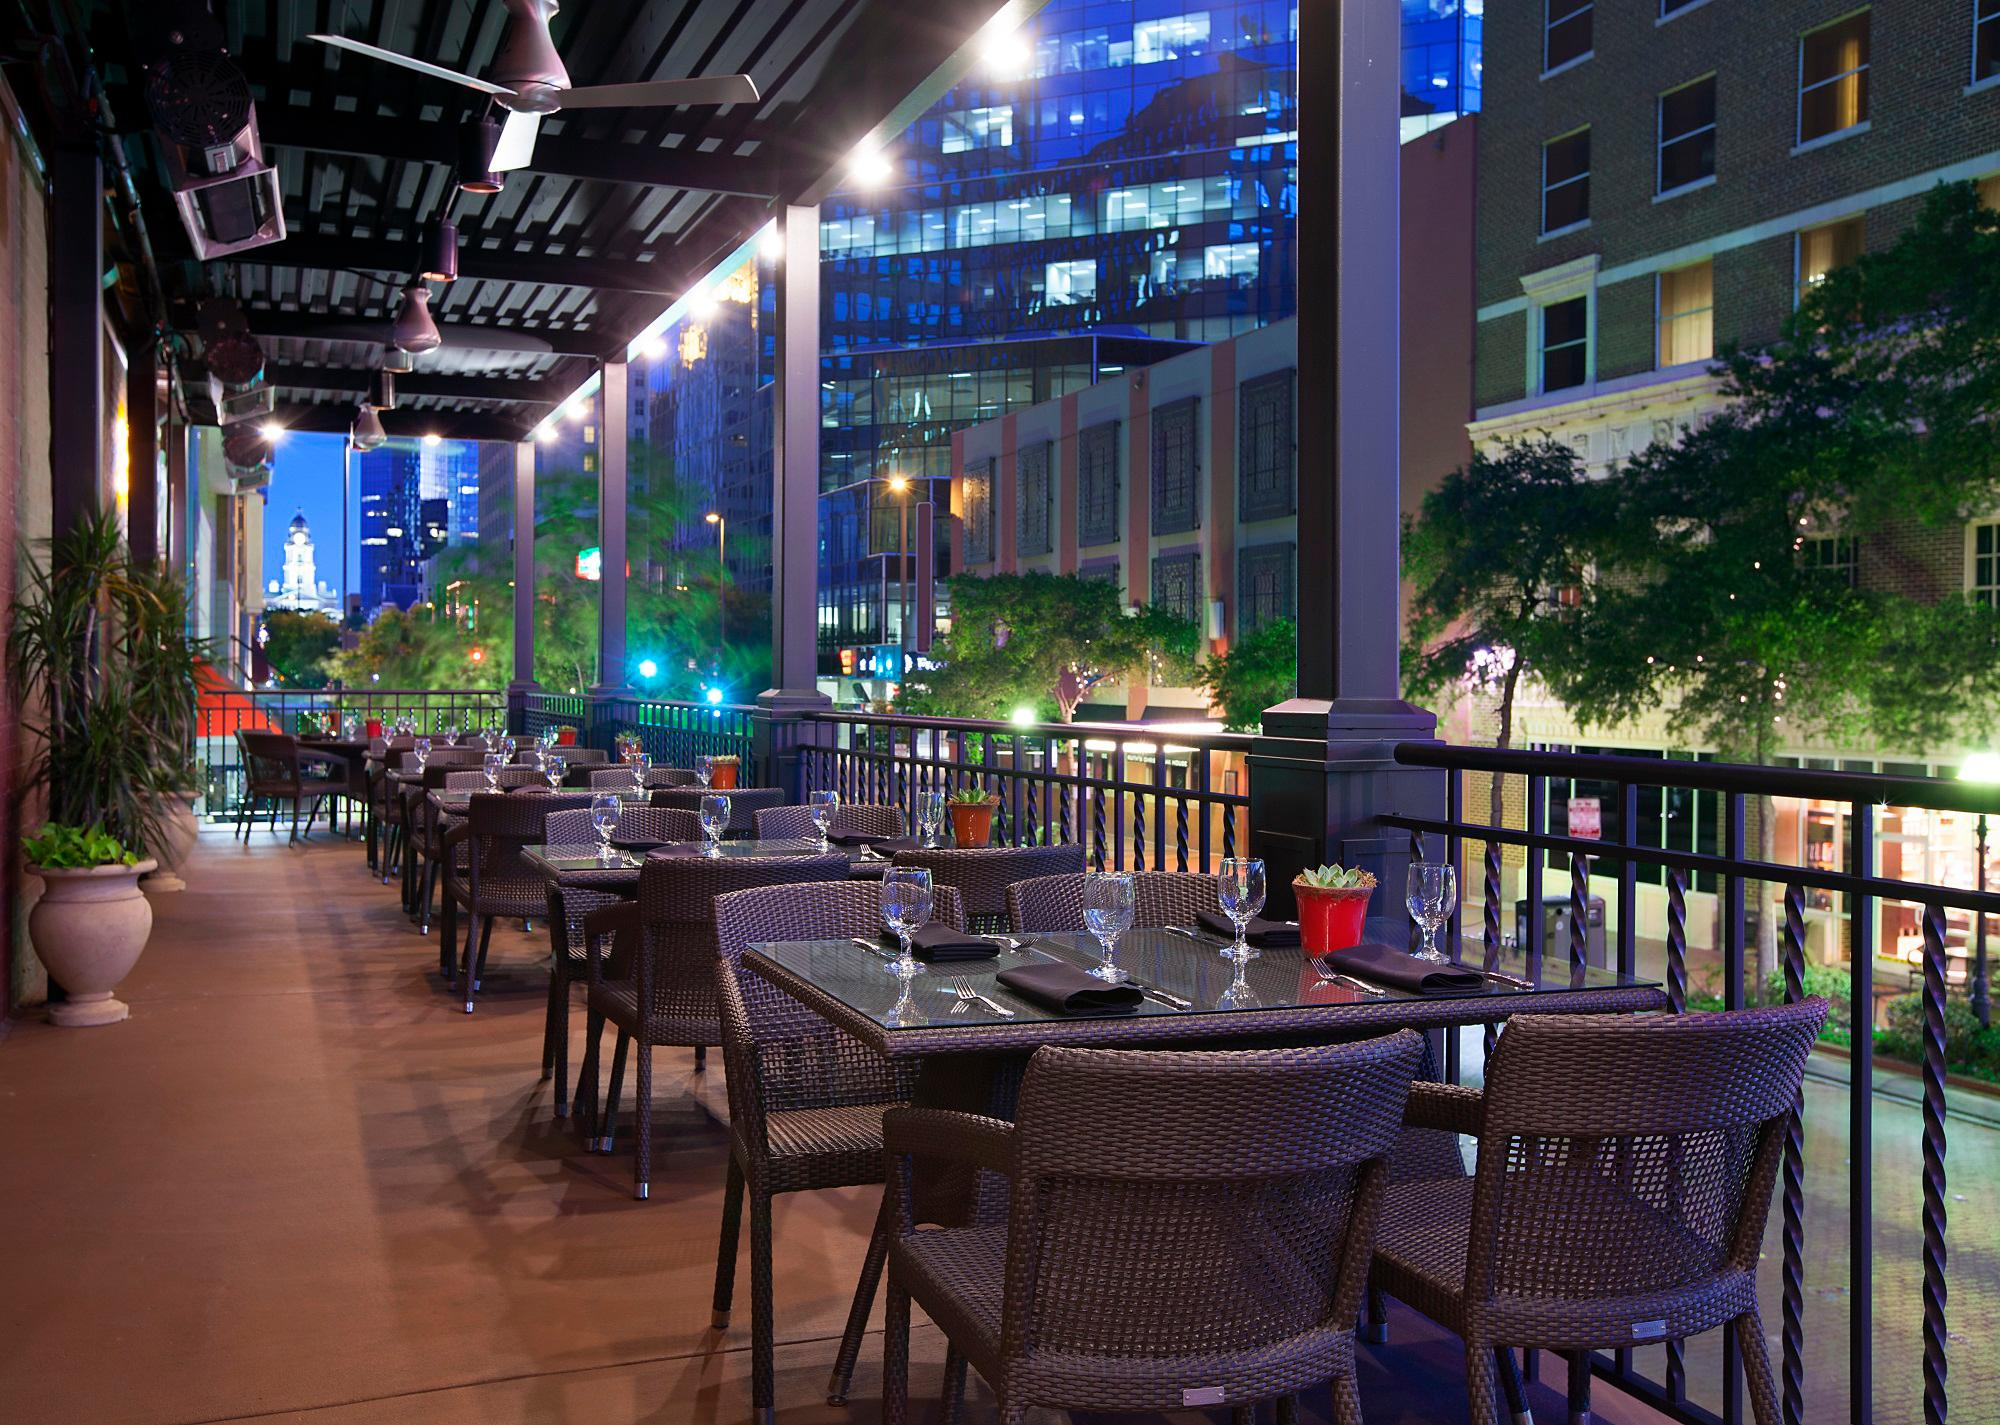 Del Frisco's Double Eagle Steakhouse Fort Worth Patio private dining room